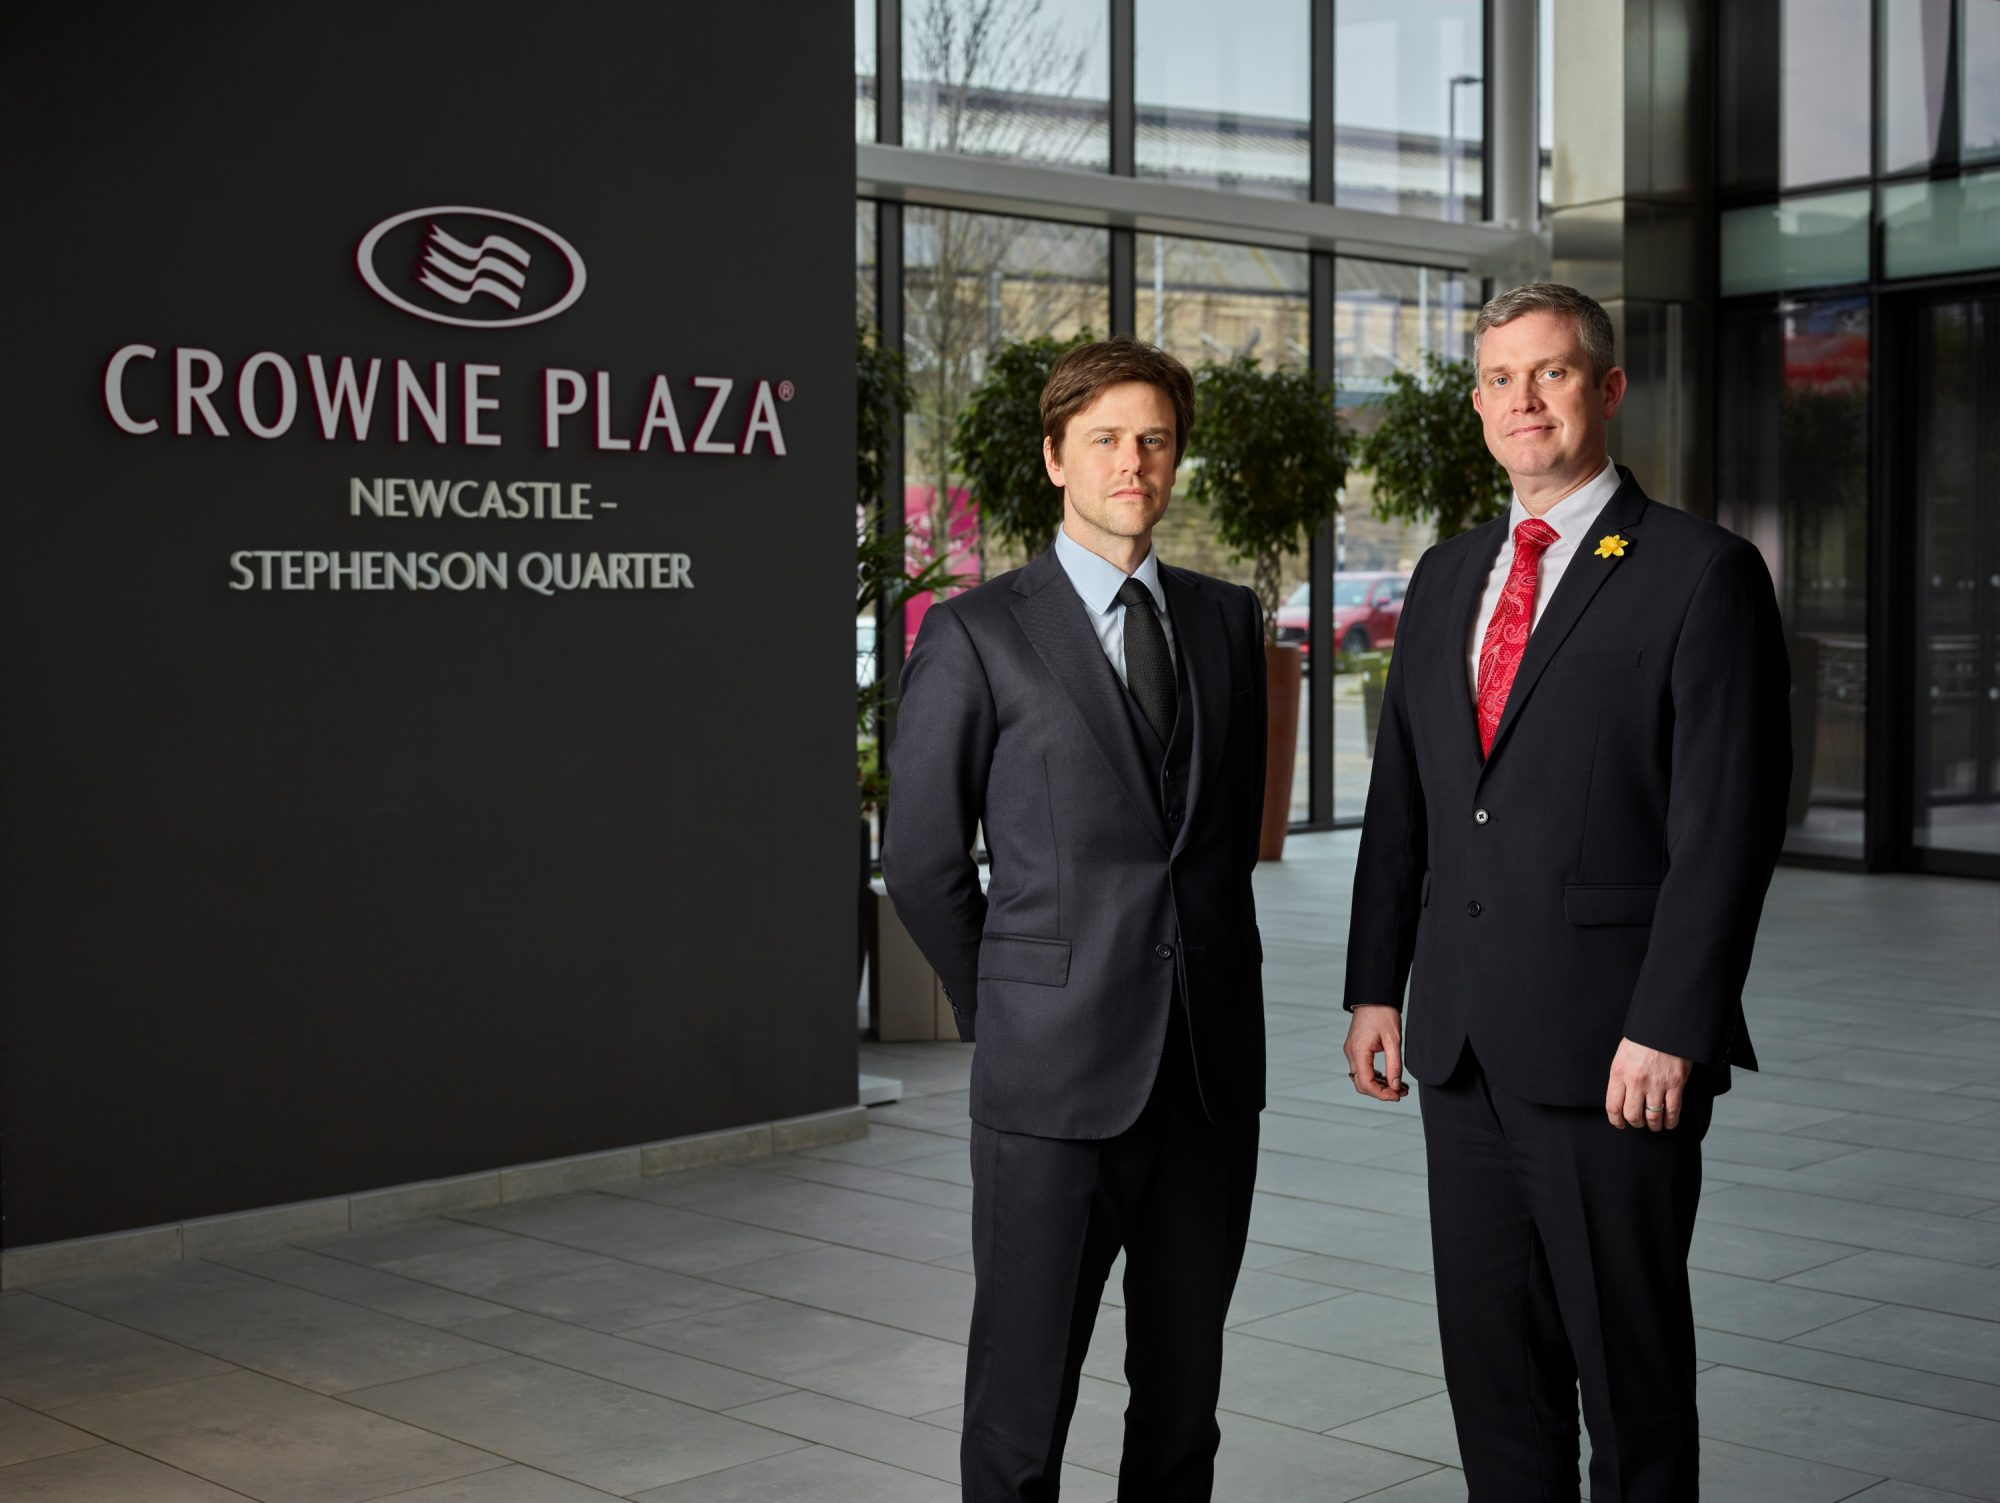 CEO of Clouston Group (owners of Crowne Plaza Newcastle), Richard Clouston, with Devin Grosse, Interstate's Regional Vice President of Operations.